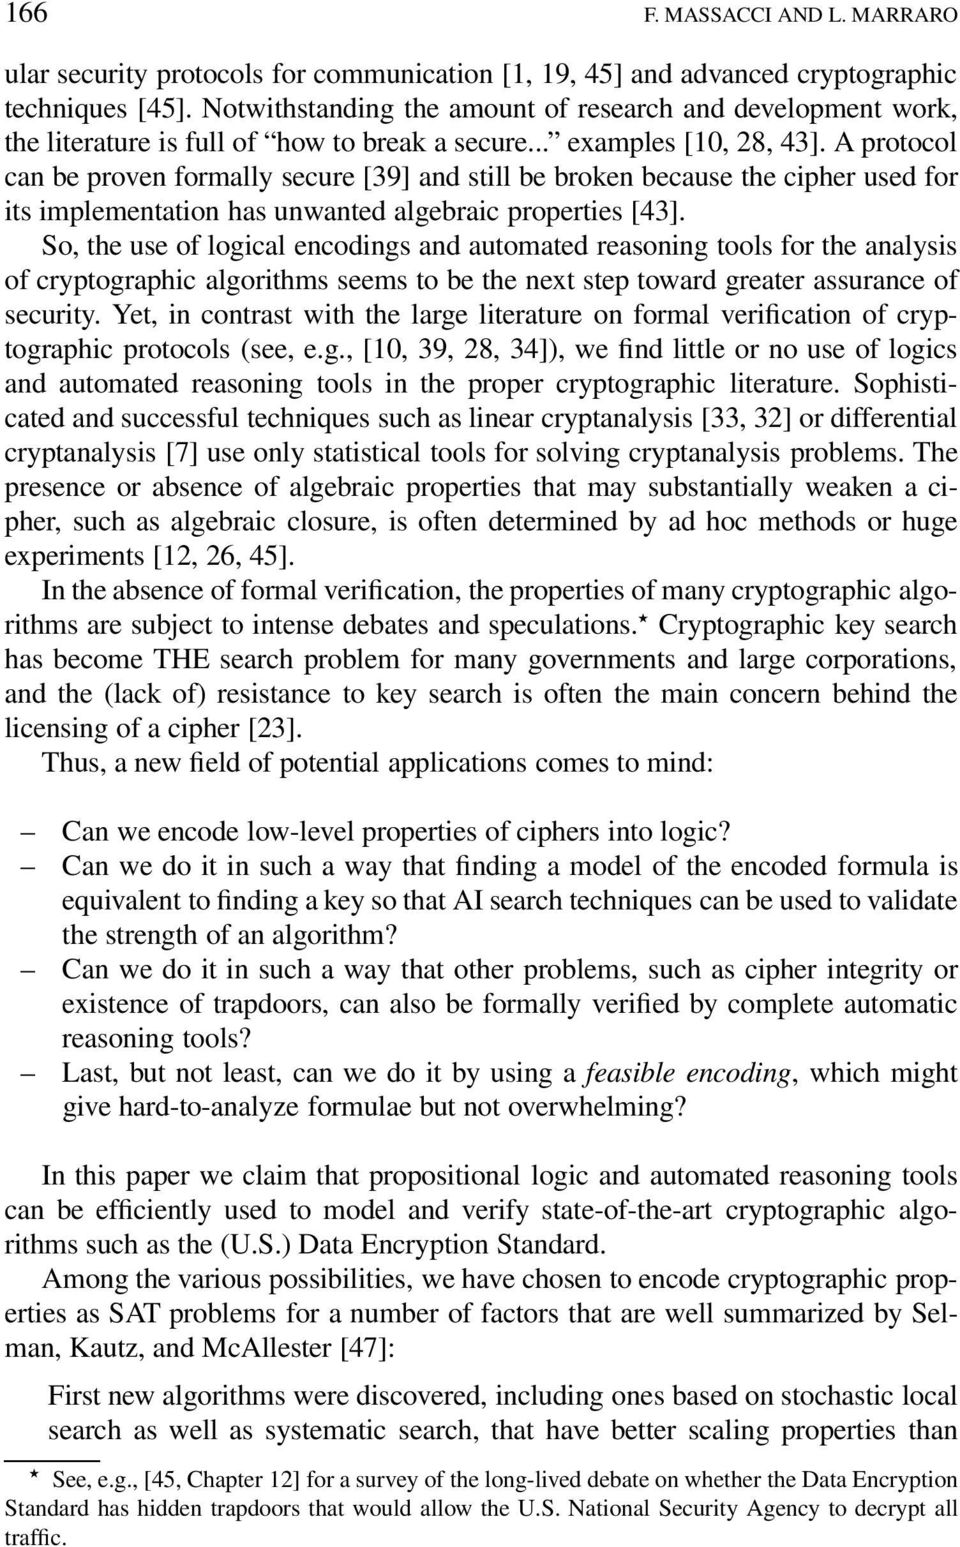 A protocol can be proven formally secure [39] and still be broken because the cipher used for its implementation has unwanted algebraic properties [43].